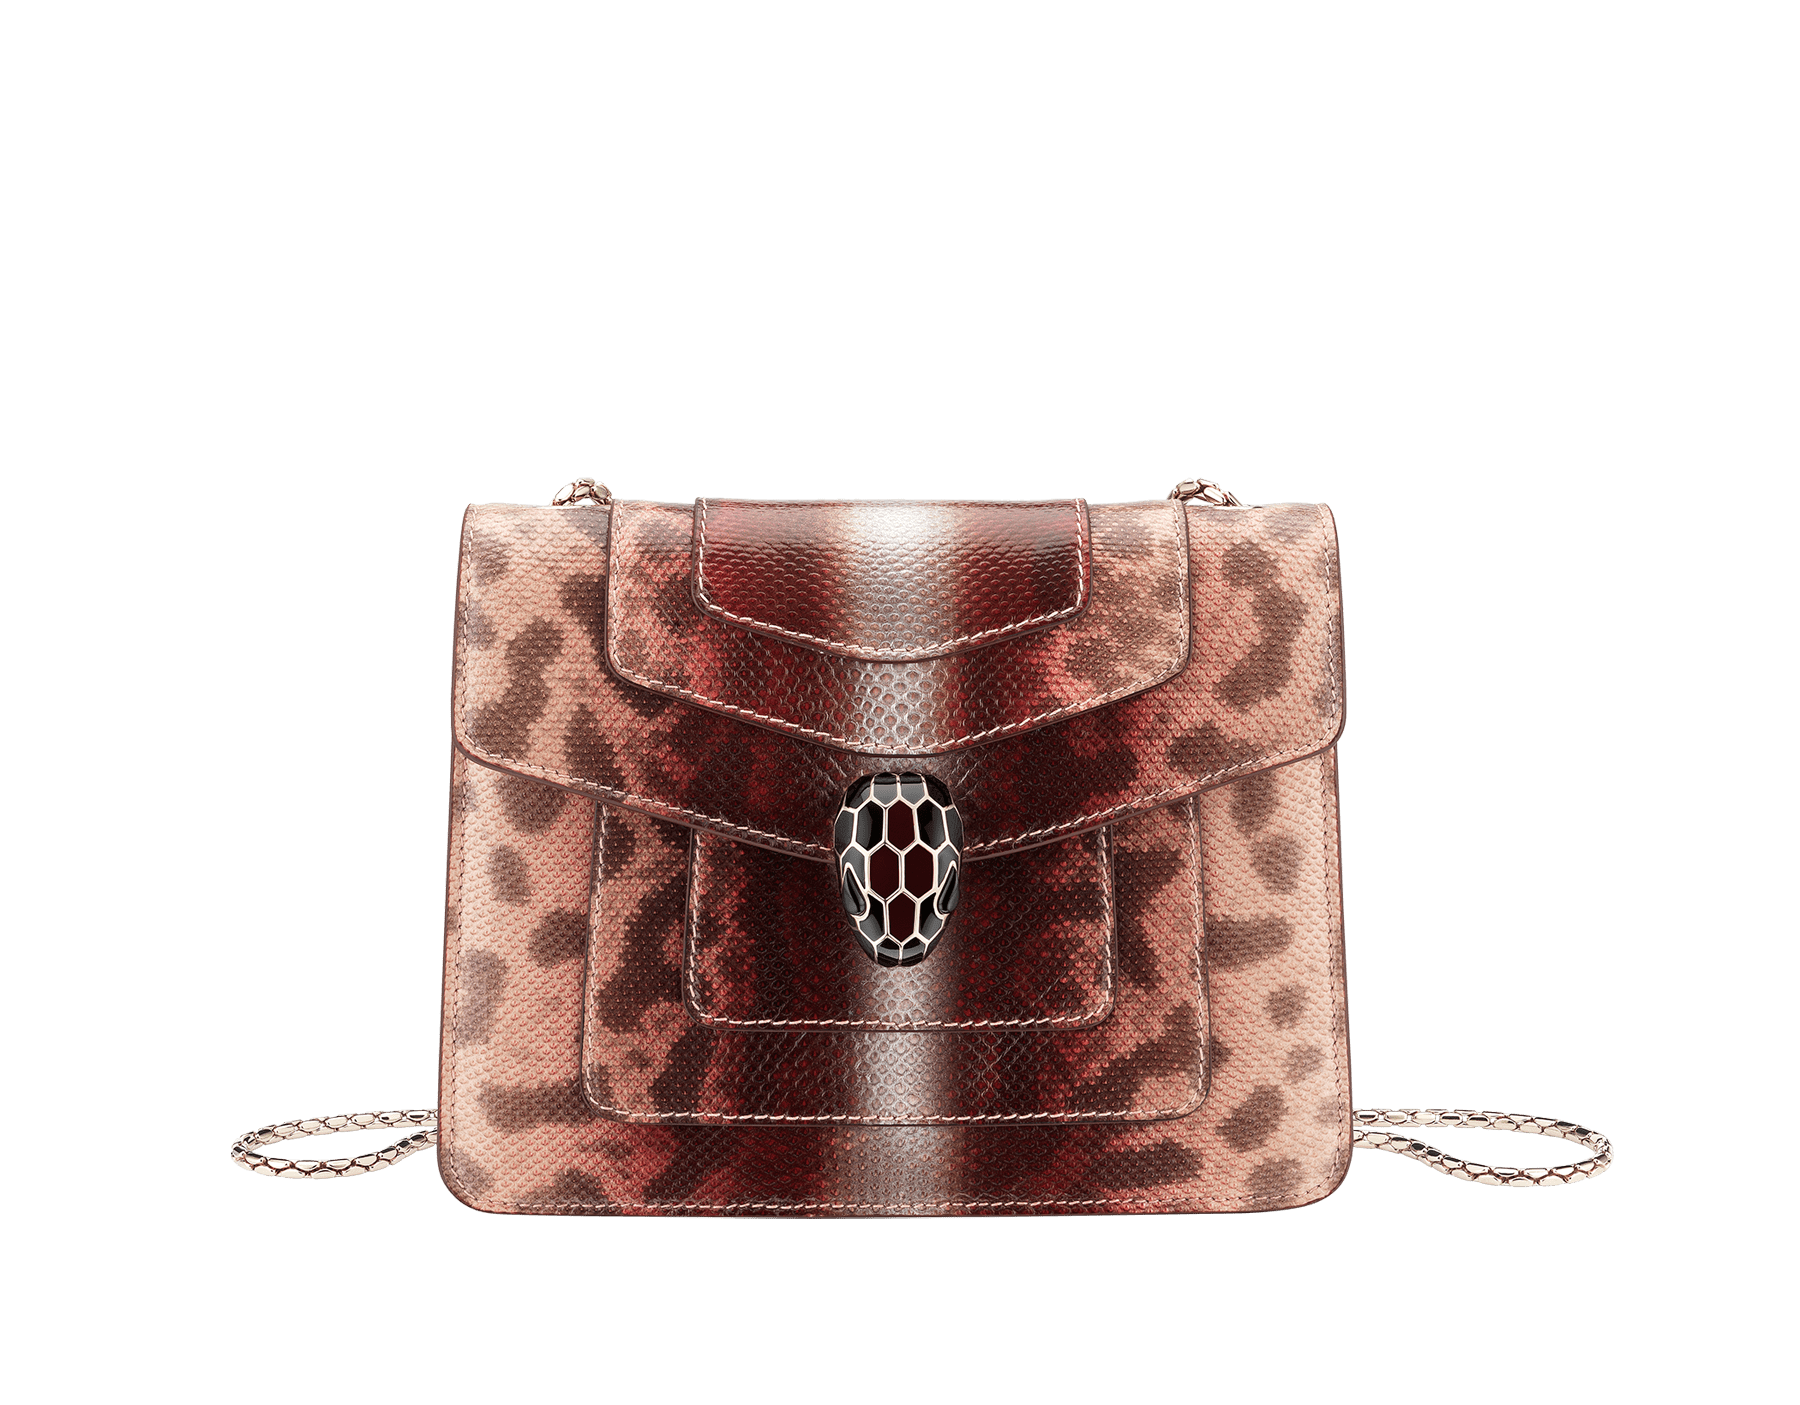 Serpenti Forever crossbody bag in rosa di francia Sahara karung skin. Iconic snakehead closure in light gold plated brass embellished with Roman garnet and black enamel and black onyx eyes. 289012 image 1